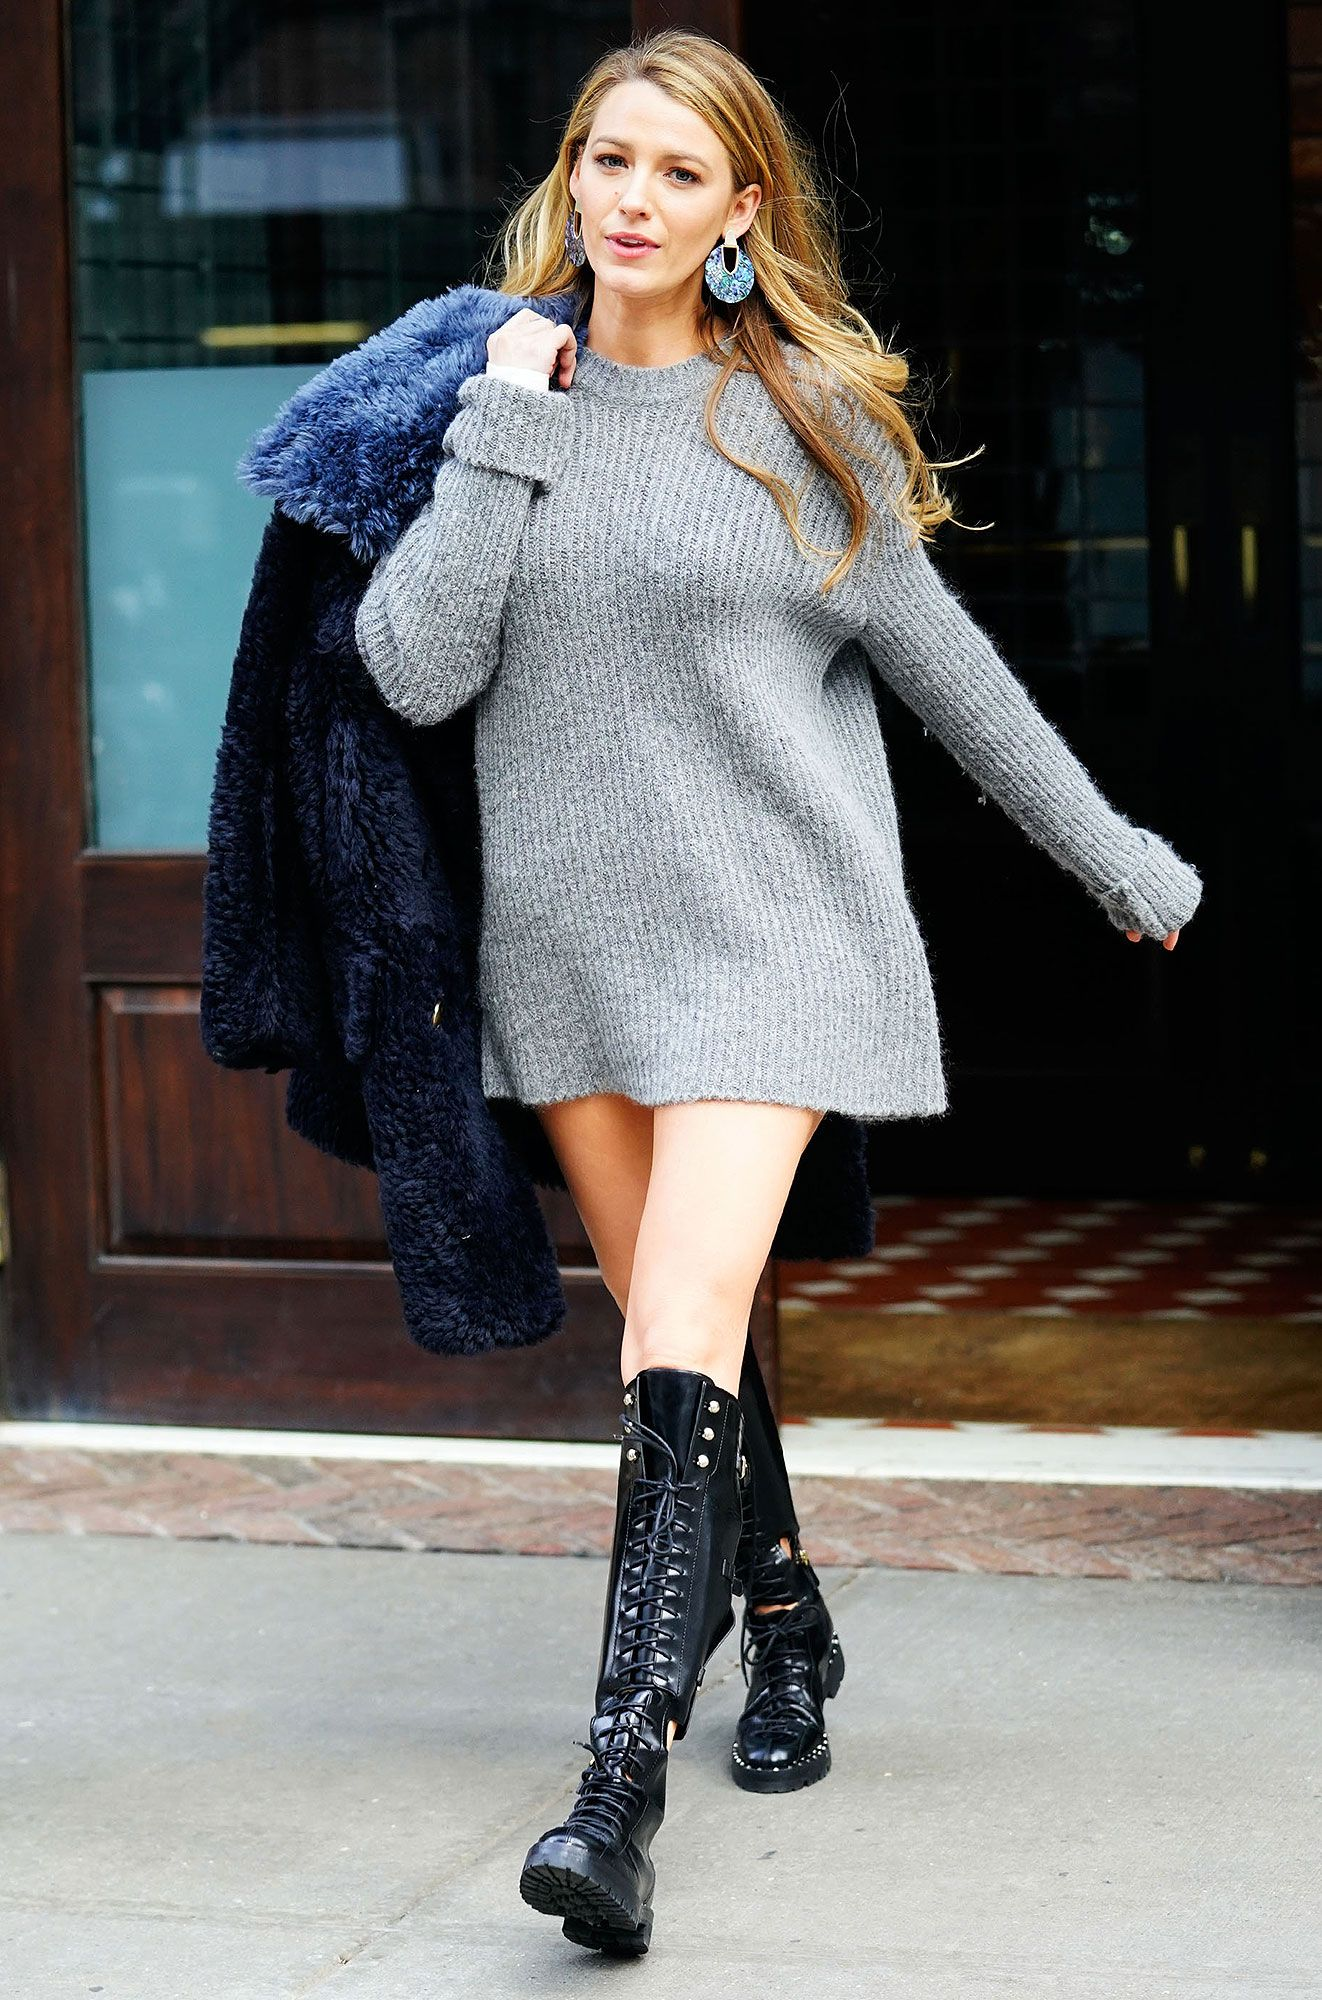 b320566e1c8 Blake Lively s Daughter Reacts to Her Mom s  Pregnancy  Sweater Dress   You  Forgot Your Pants!